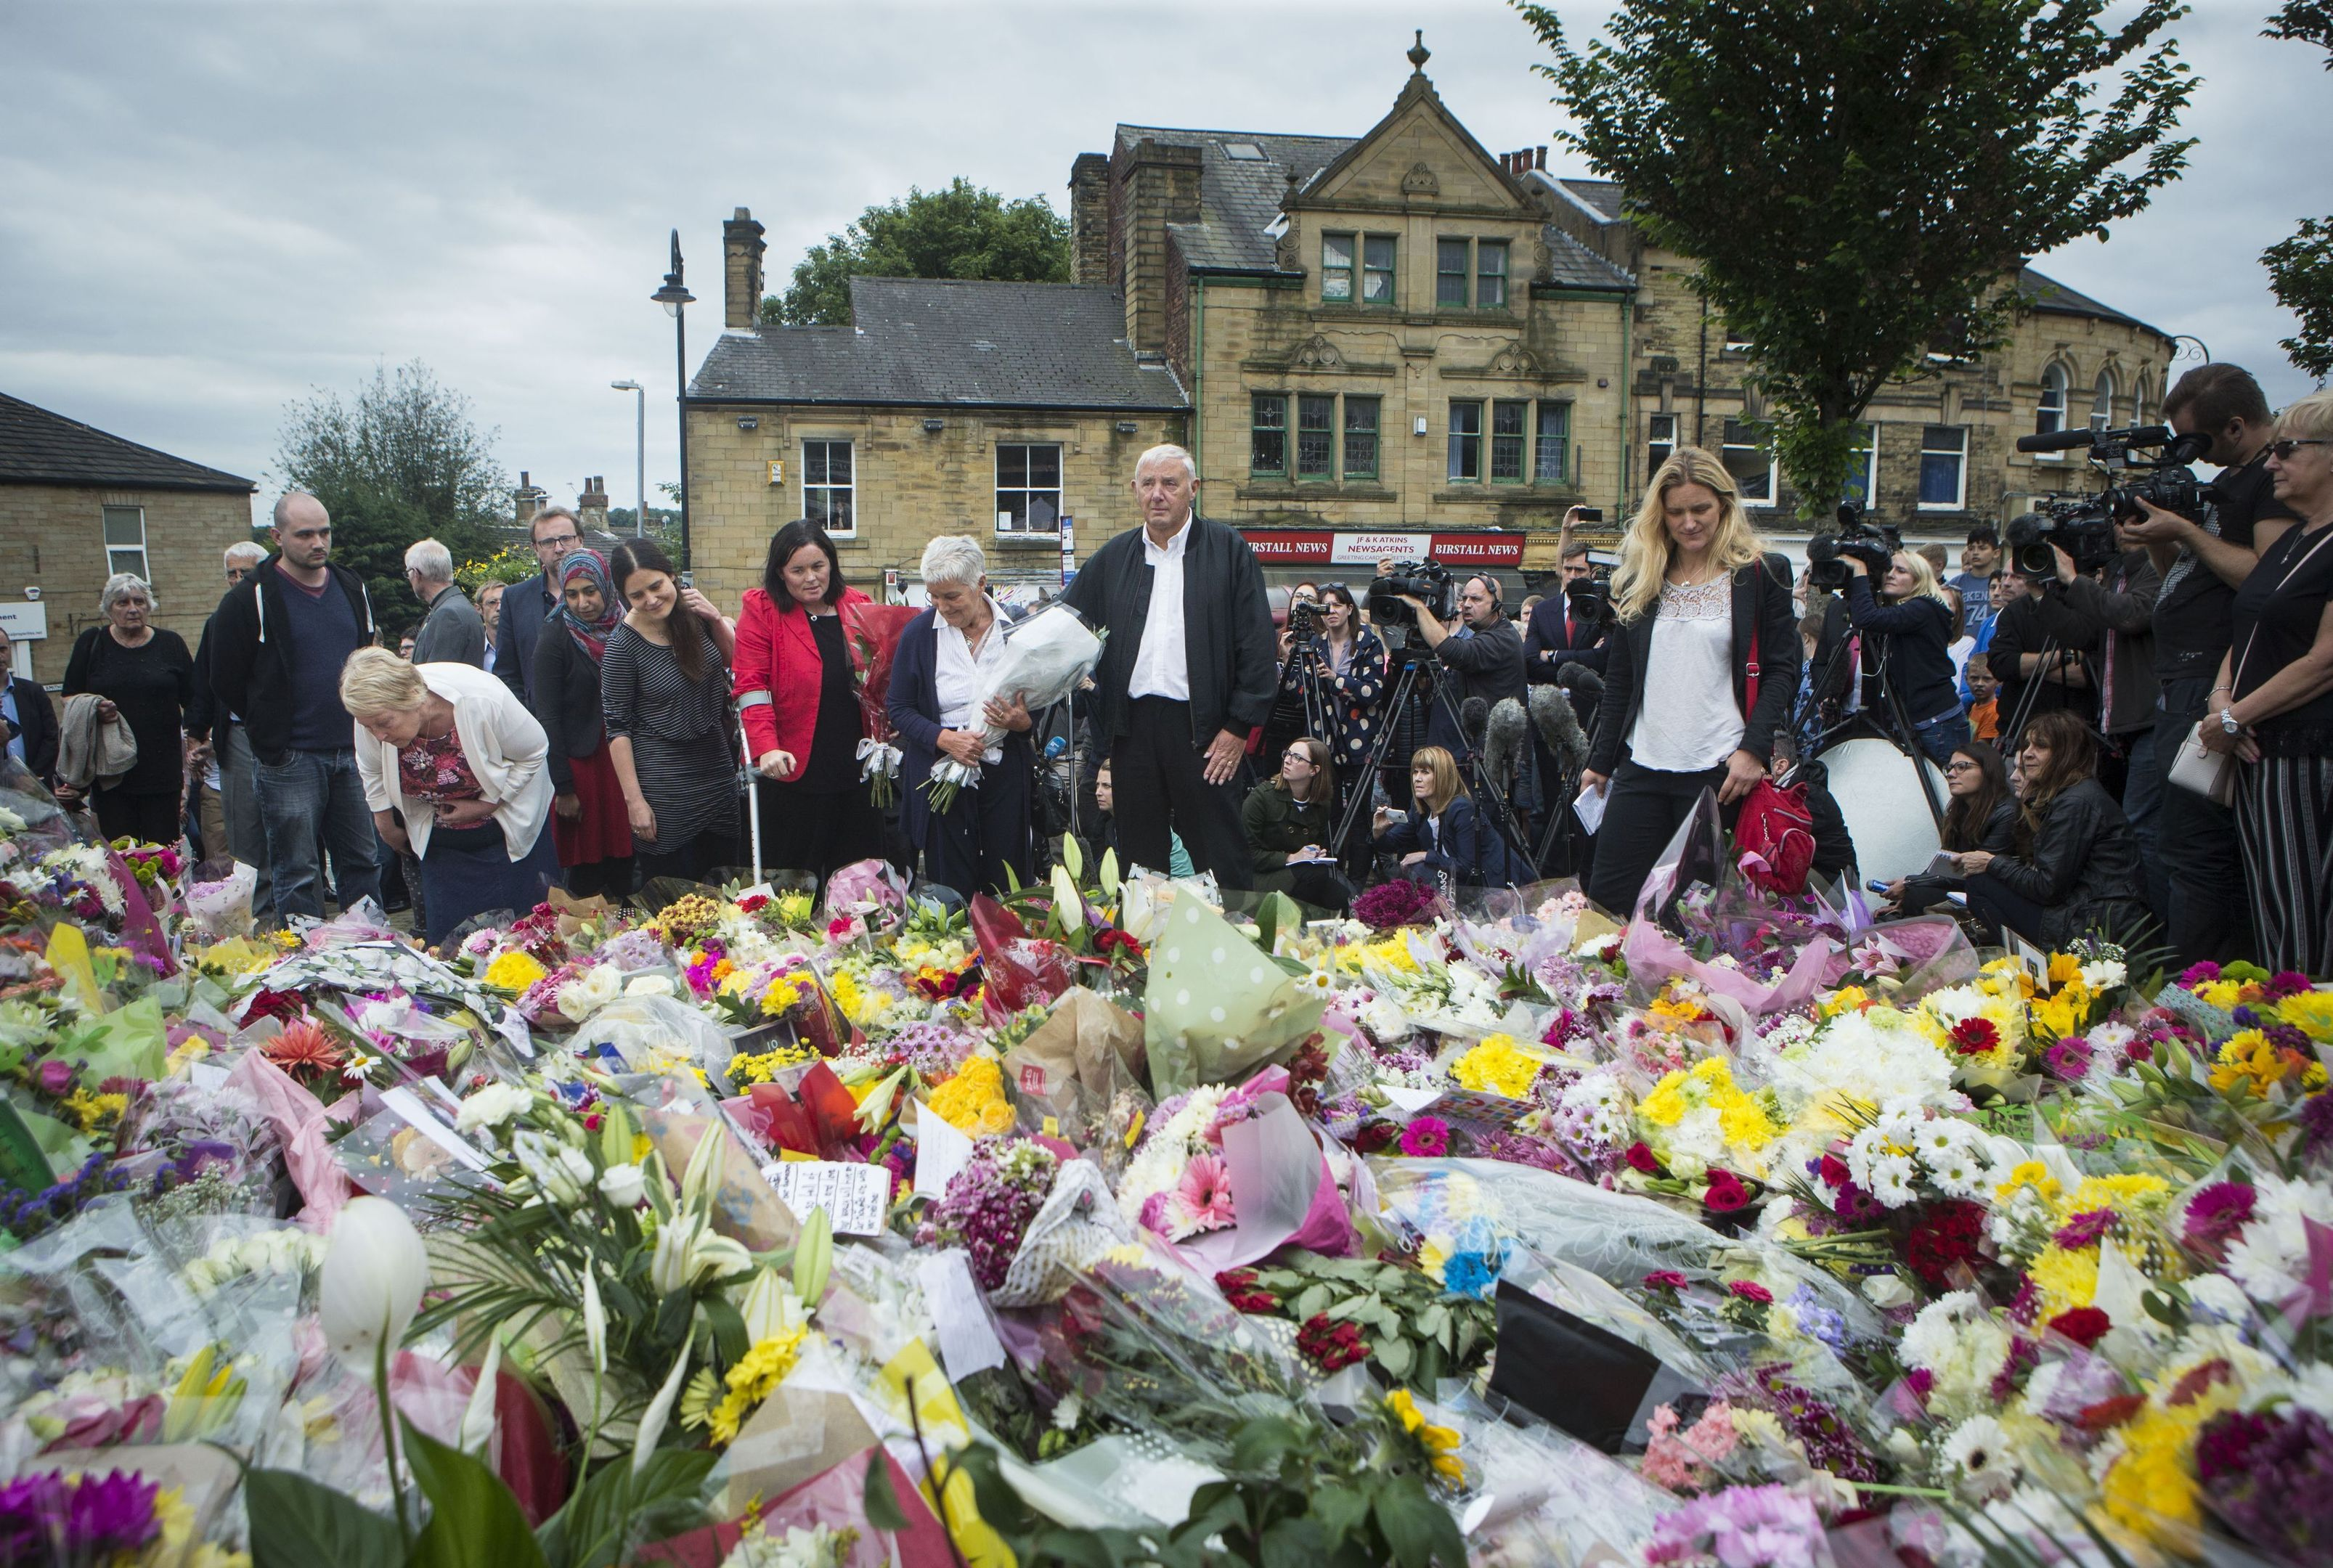 Kim Leadbeater (right), the sister of Labour MP Jo Cox, views floral tributes with her parents Jean and Gordon Leadbeater (centre) in Birstall, West Yorkshire (Danny Lawson/PA)